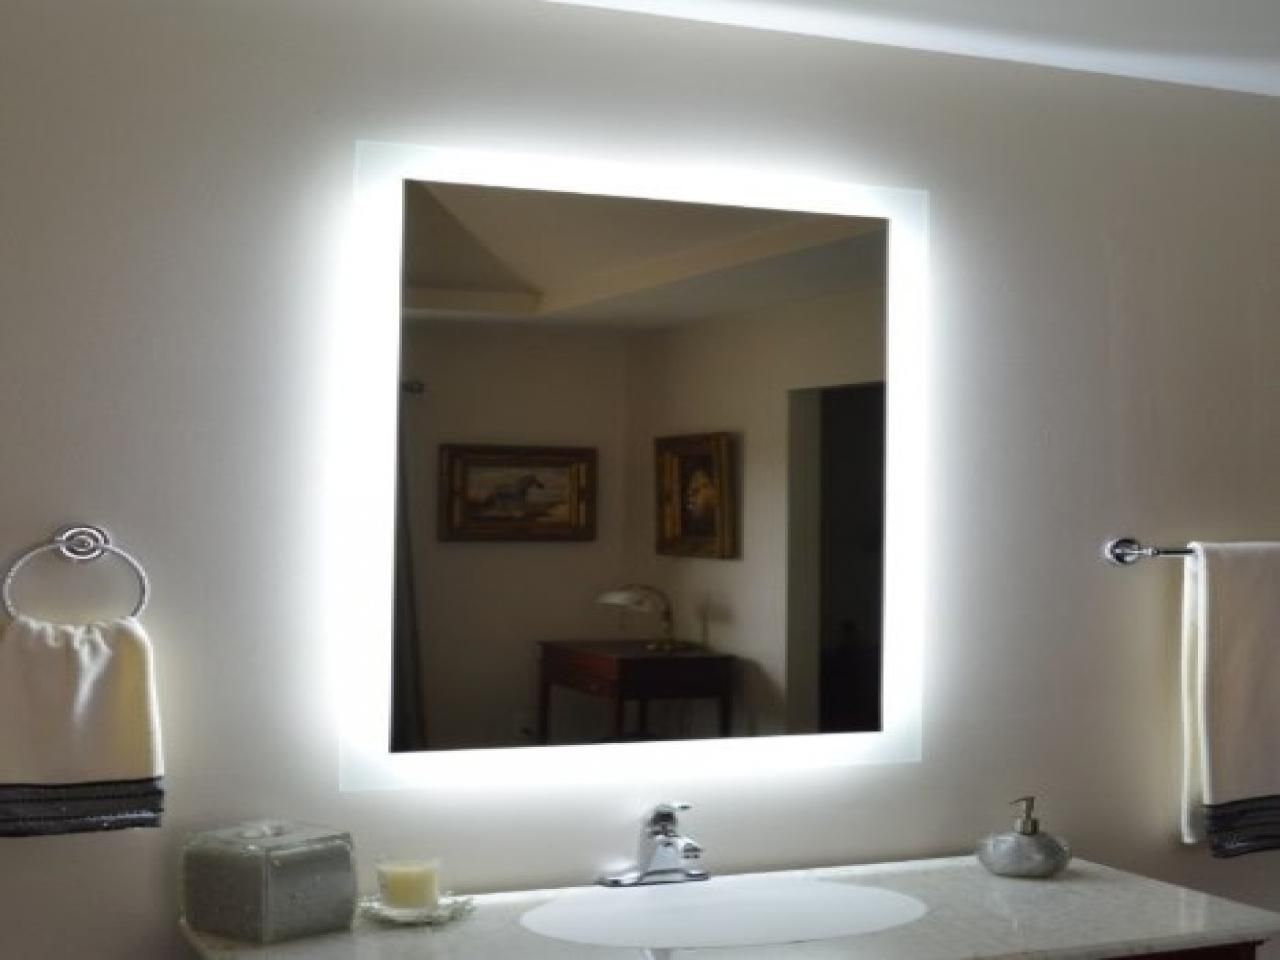 Lighted Vanity Mirror Wall Mount Ideas — The Homy Design Within Bathroom Lighted Vanity Mirrors (Image 17 of 20)